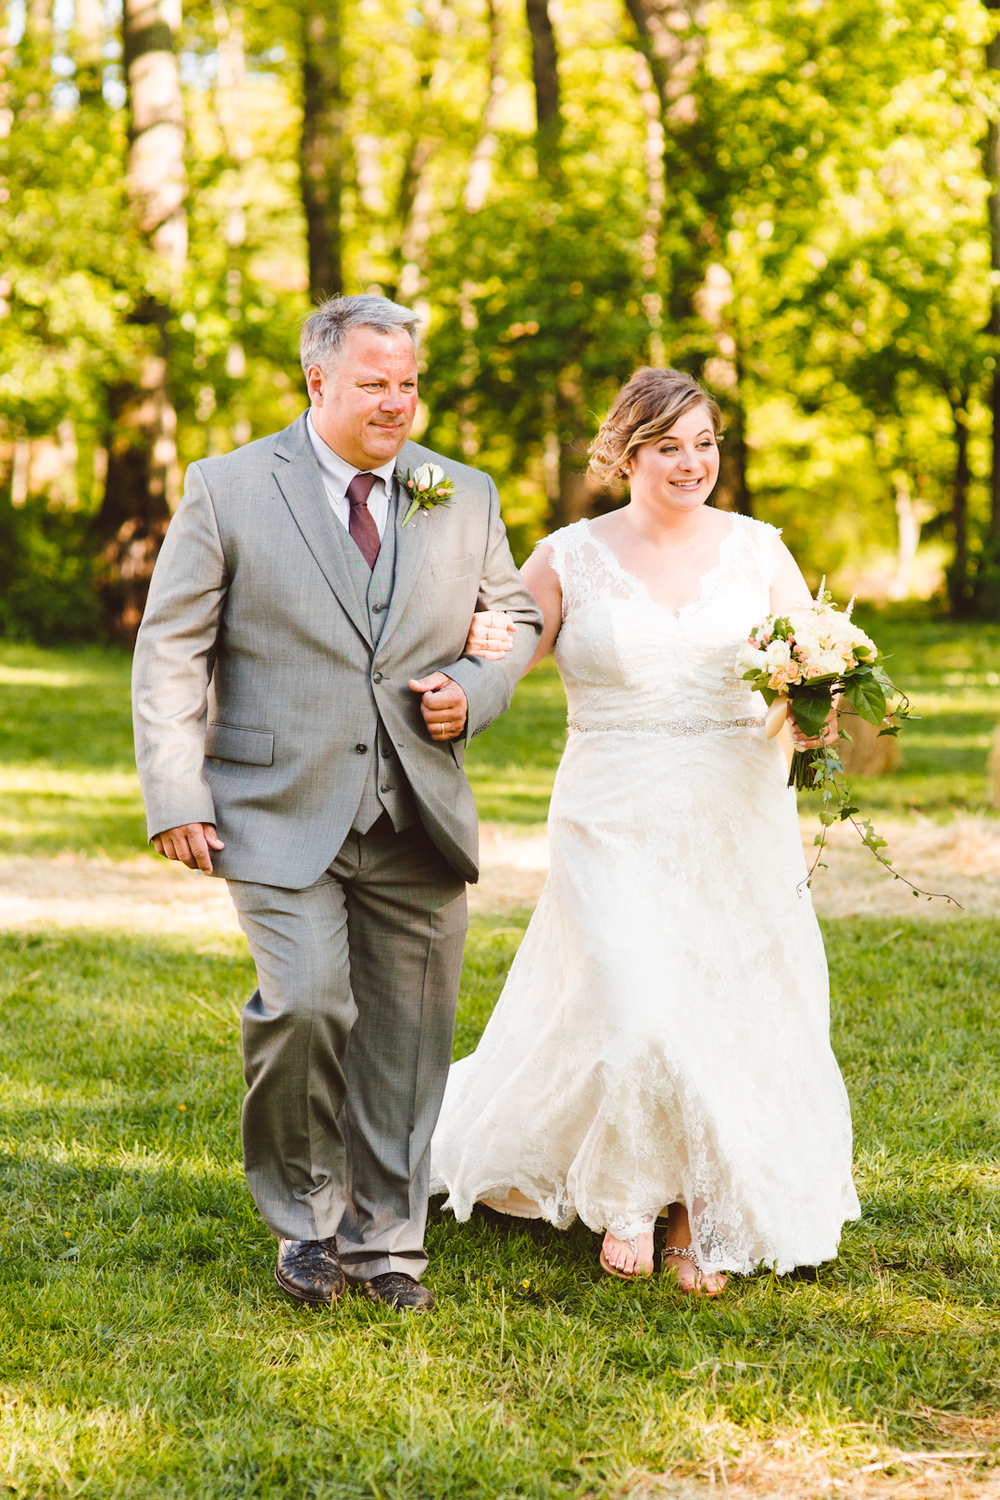 brittany-and-chris-family-farm-whimsical-maryland-wedding-brooke-michelle-photography-1.jpg